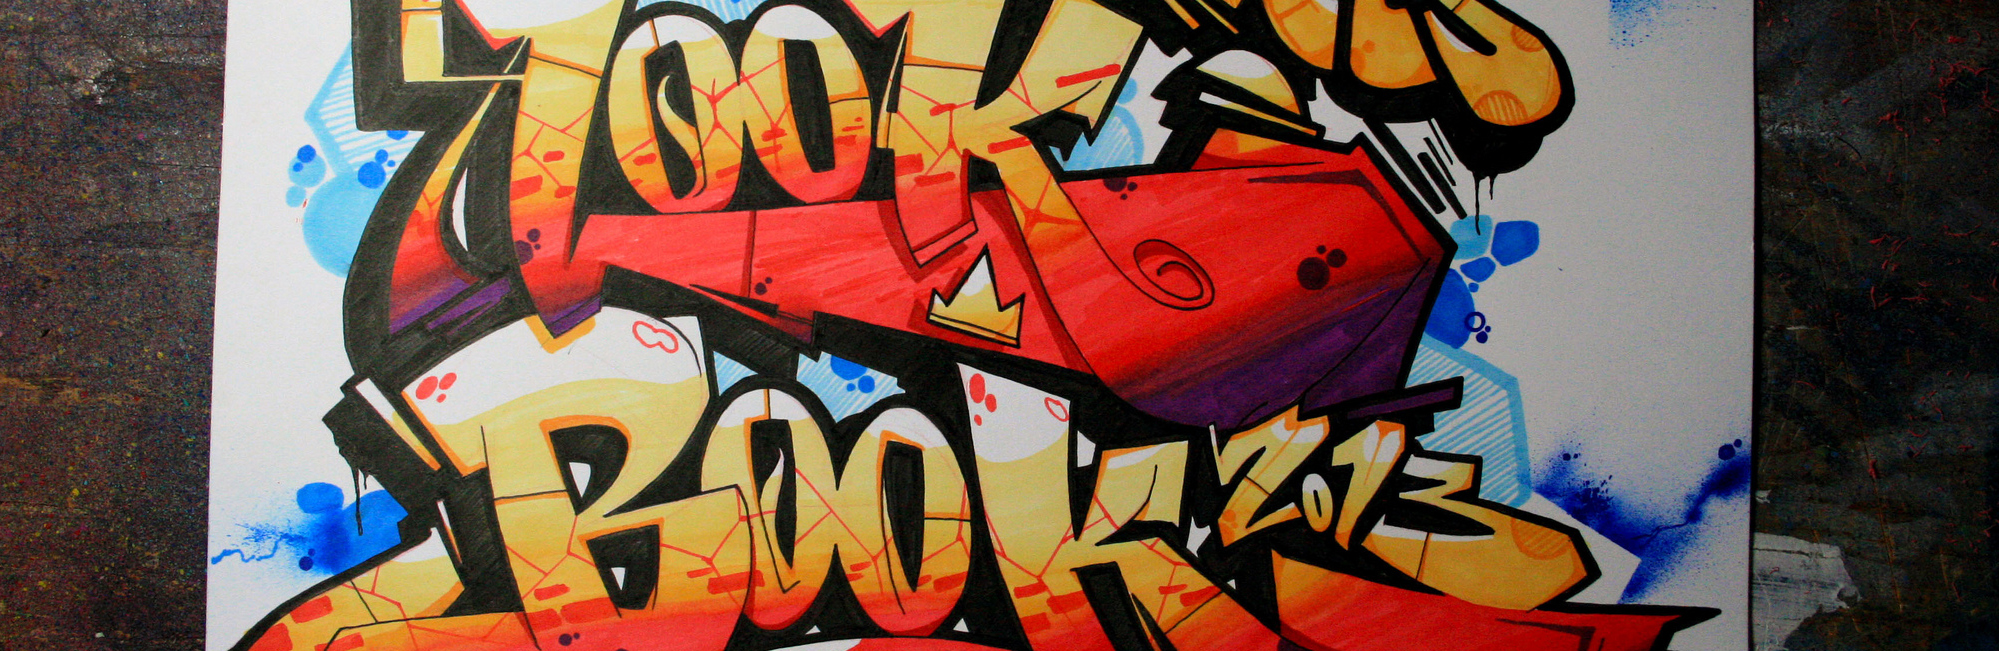 "Graffiti spelling out ""look book"""